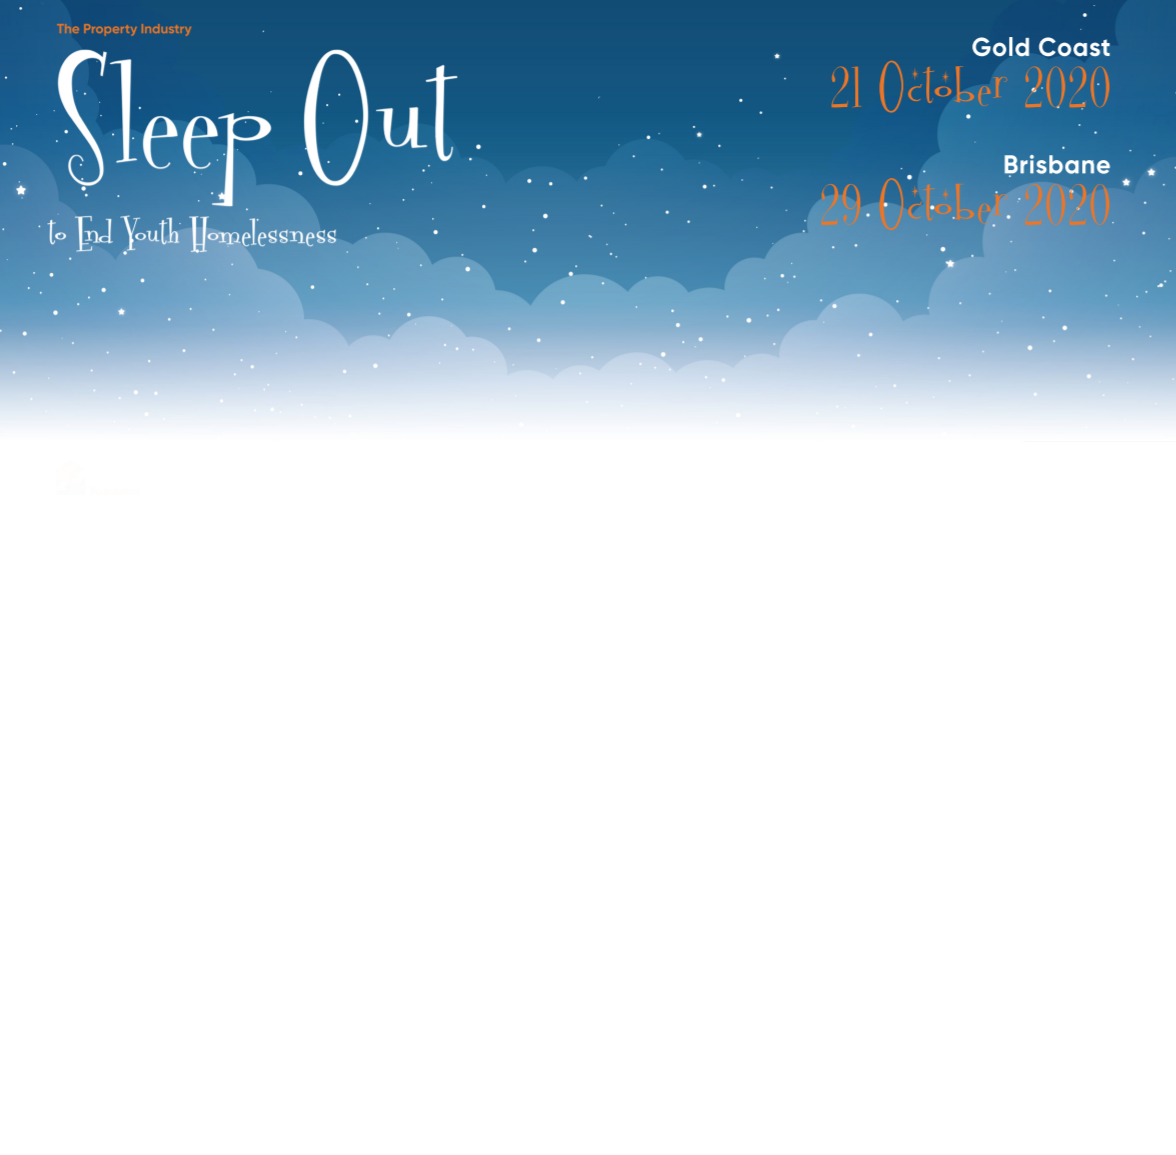 Sleep Out QLD A4 PDF